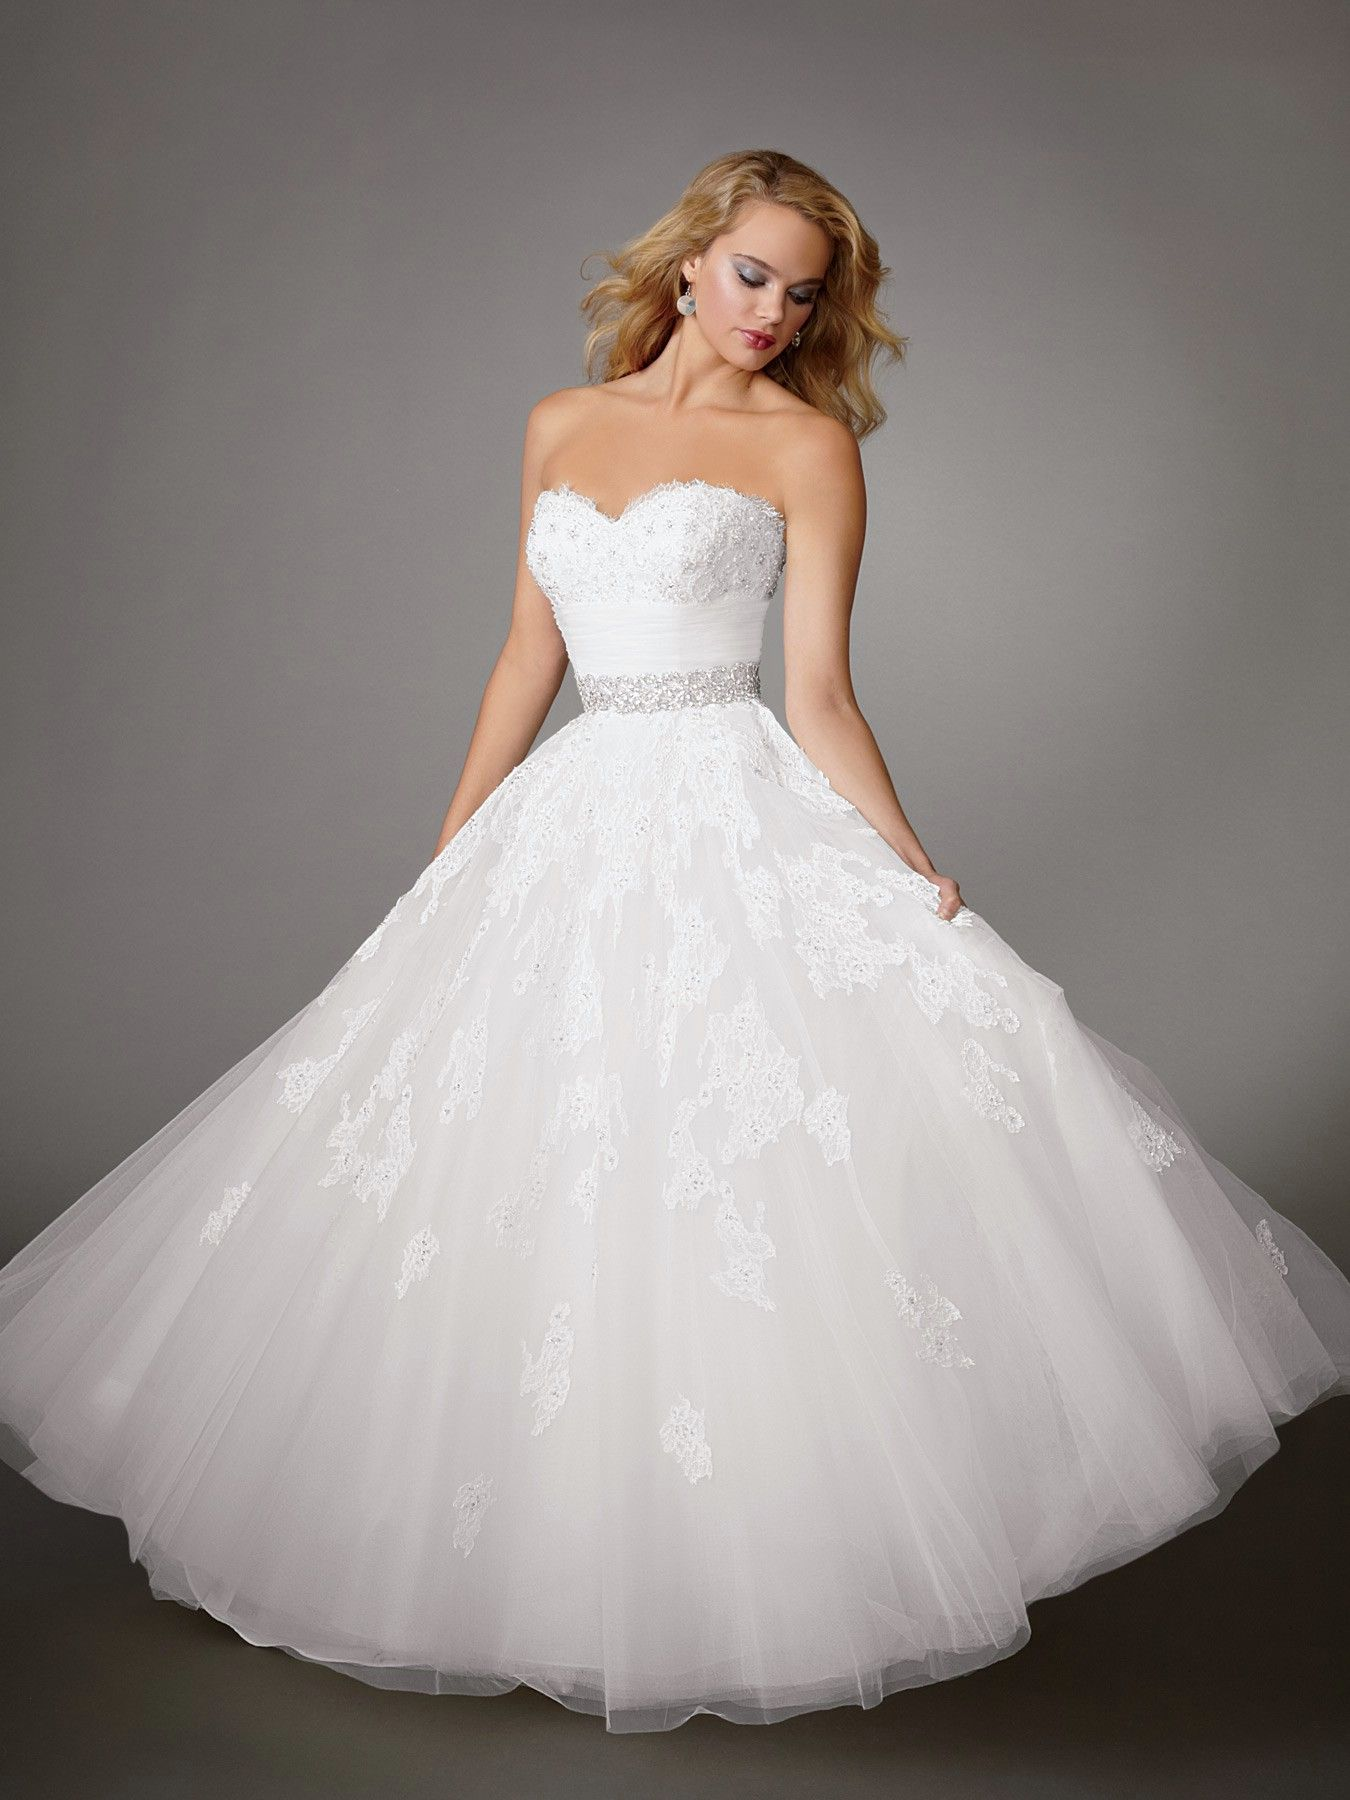 Ballgown wedding dresses with tool and straps wedding dresses ballgown wedding dresses with tool and straps wedding dresses spring 2013 lace and ombrellifo Image collections